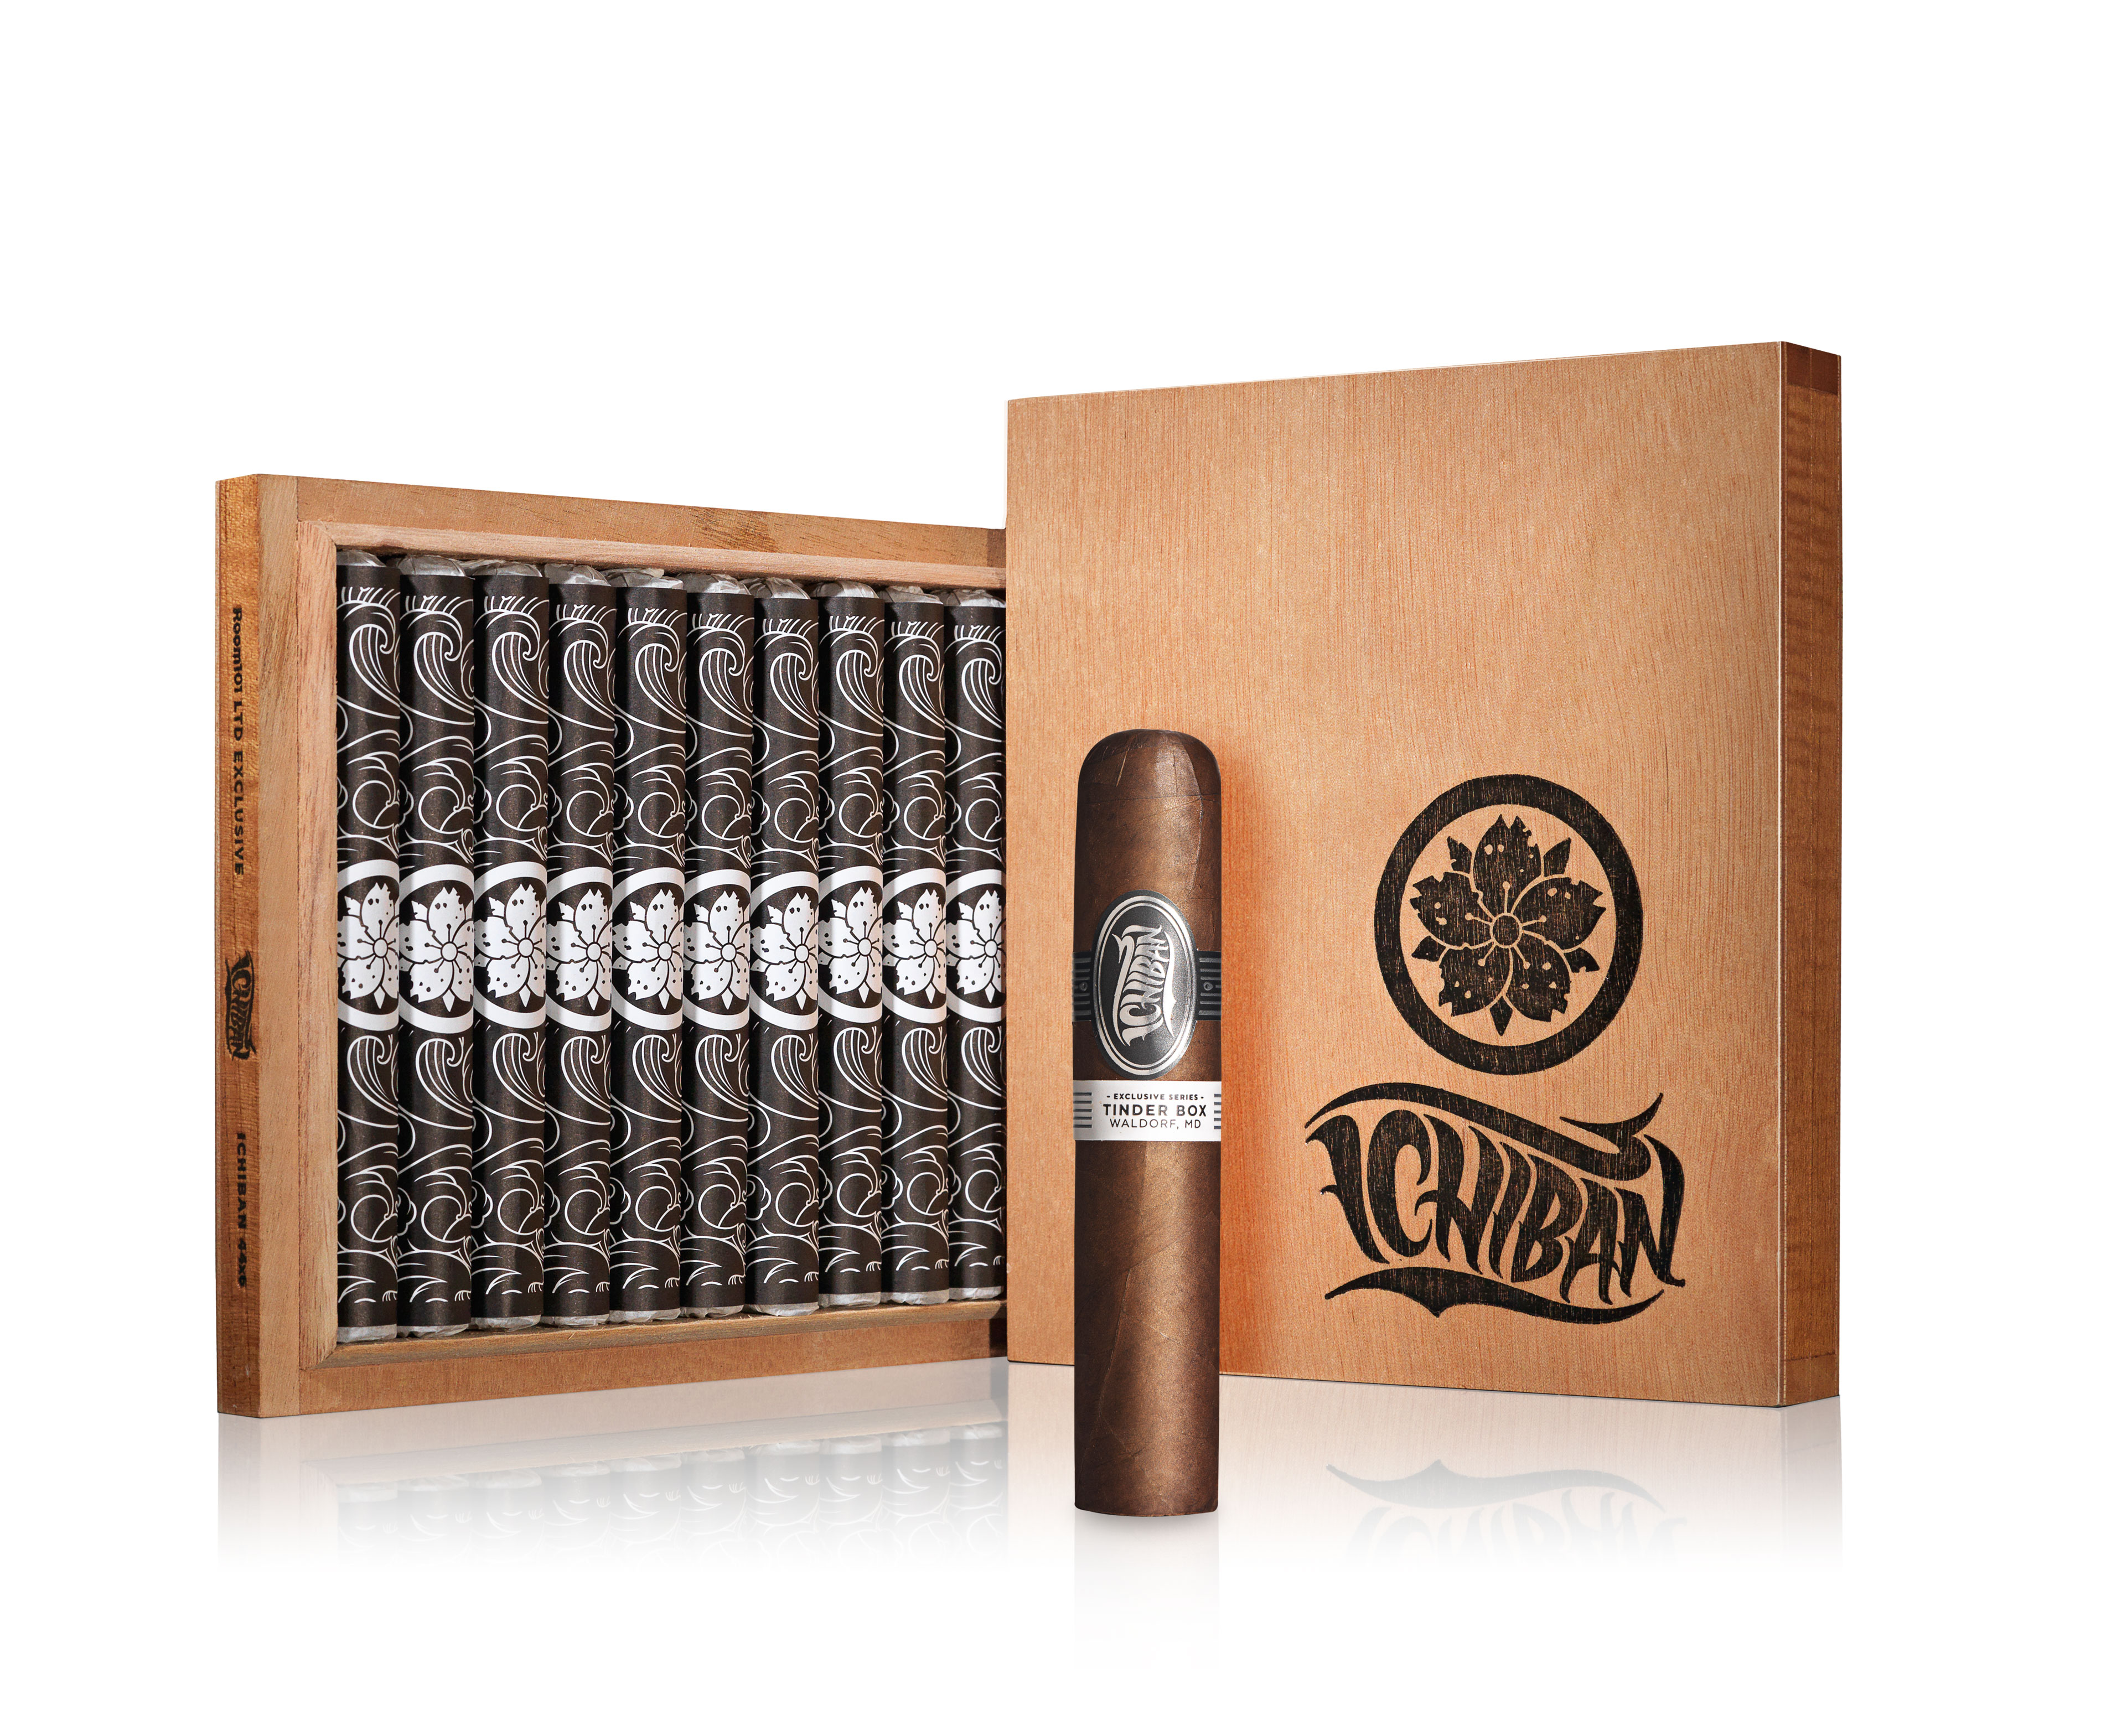 Cigar News: Room 101 Ichiban Monstro Becomes Shop Exclusive to Tinder Box Waldorf